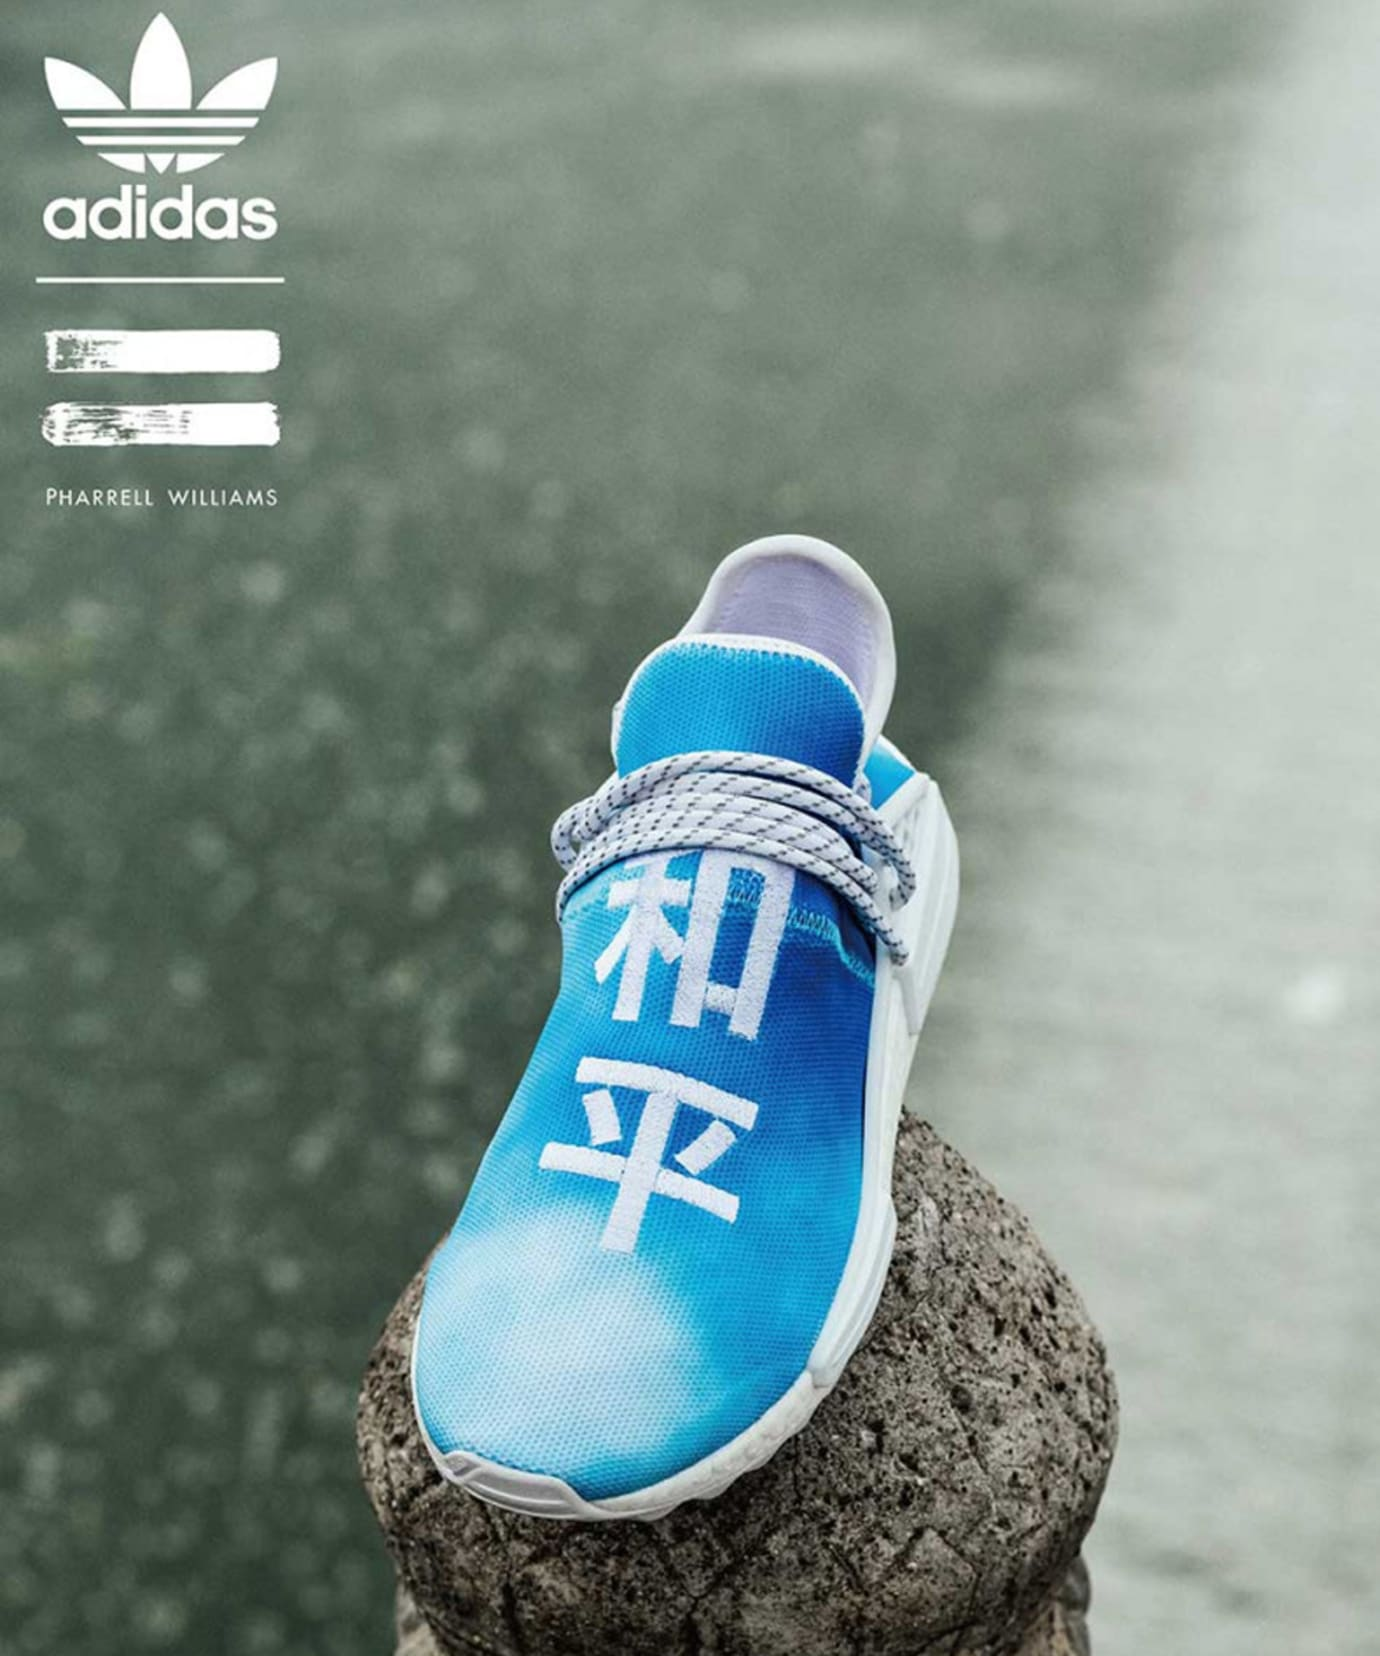 Image via Adidas Pharrell Williams x Adidas NMD Hu  China Pack  Blue F99763 bb895e4bd